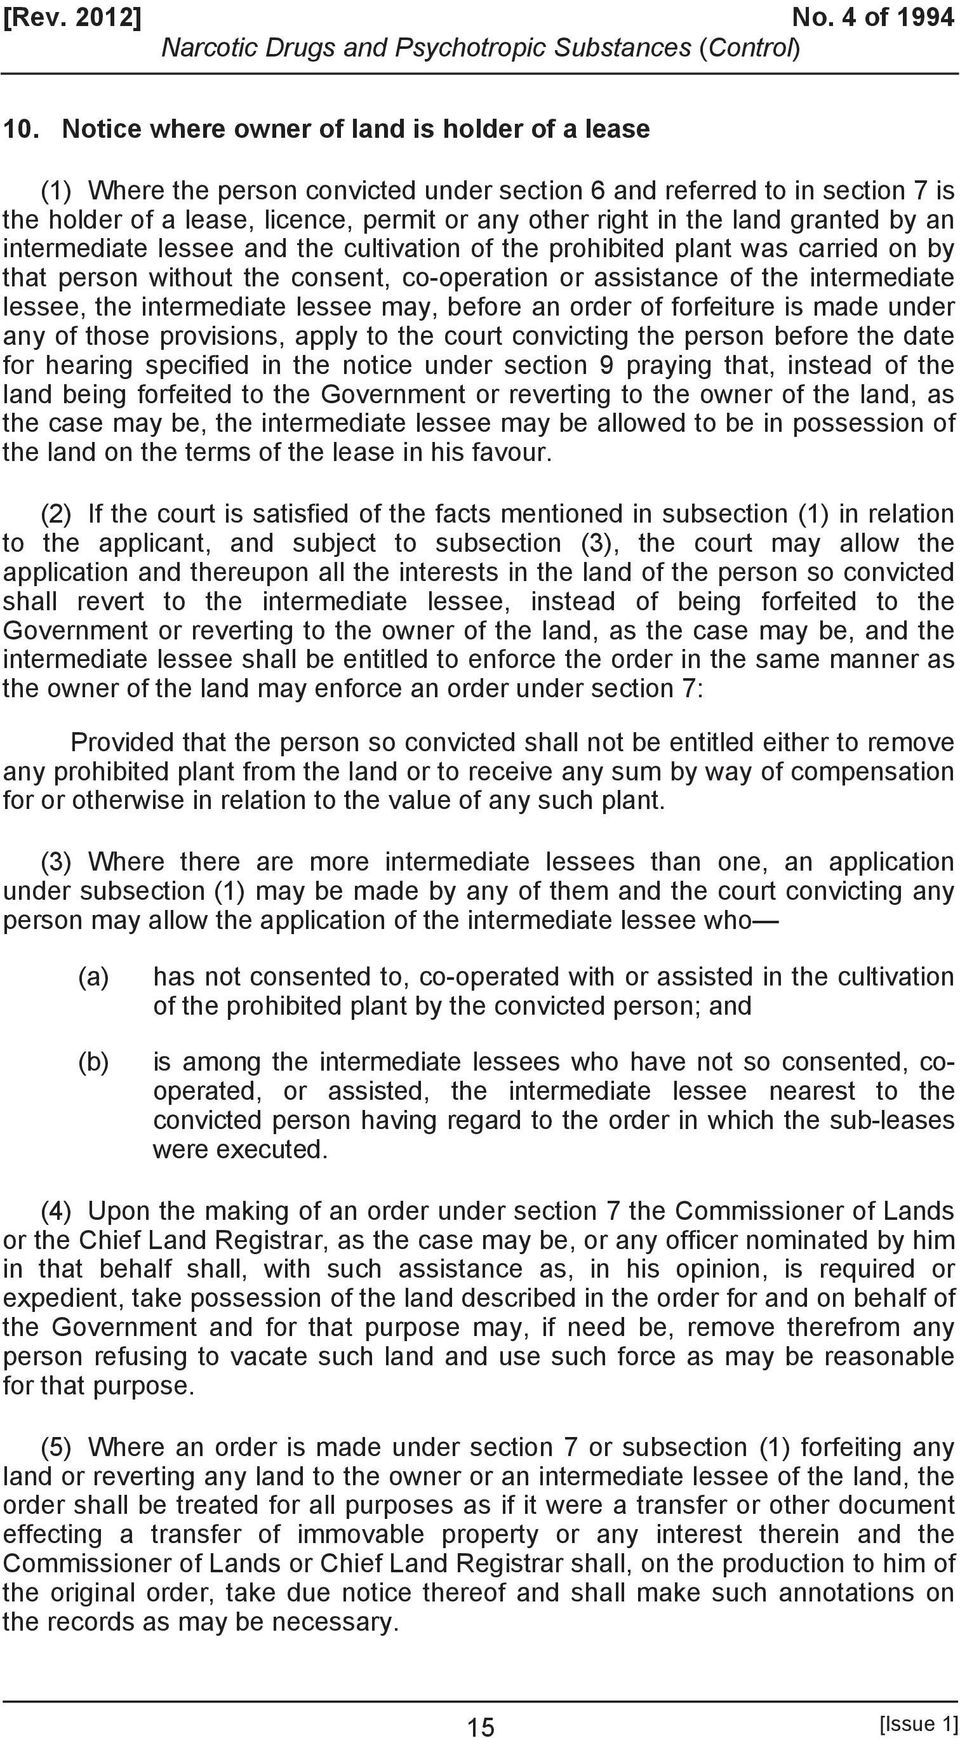 granted by an intermediate lessee and the cultivation of the prohibited plant was carried on by that person without the consent, co-operation or assistance of the intermediate lessee, the